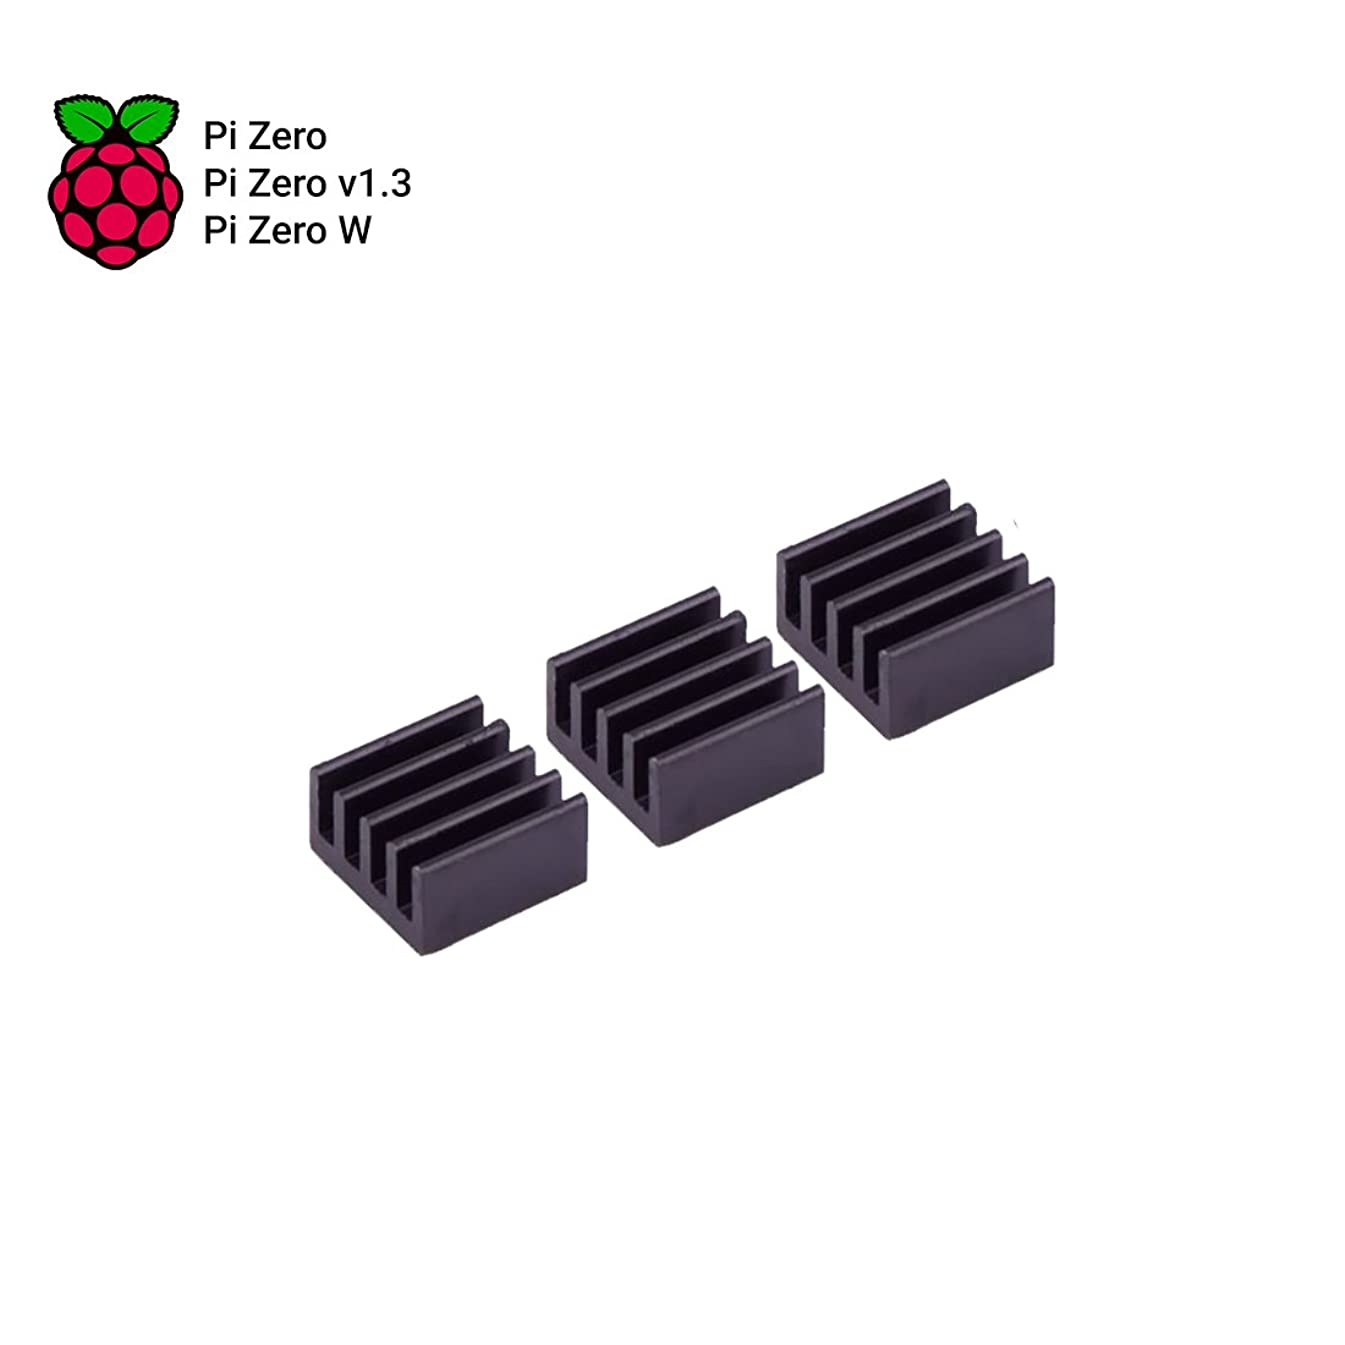 MakerSpot Pi Zero Heatsink Kit with Adhesive Tape, Mini Cooler Heat Sink for Cooling 11mm x 11mm x 5mm - 3 Pack - Black